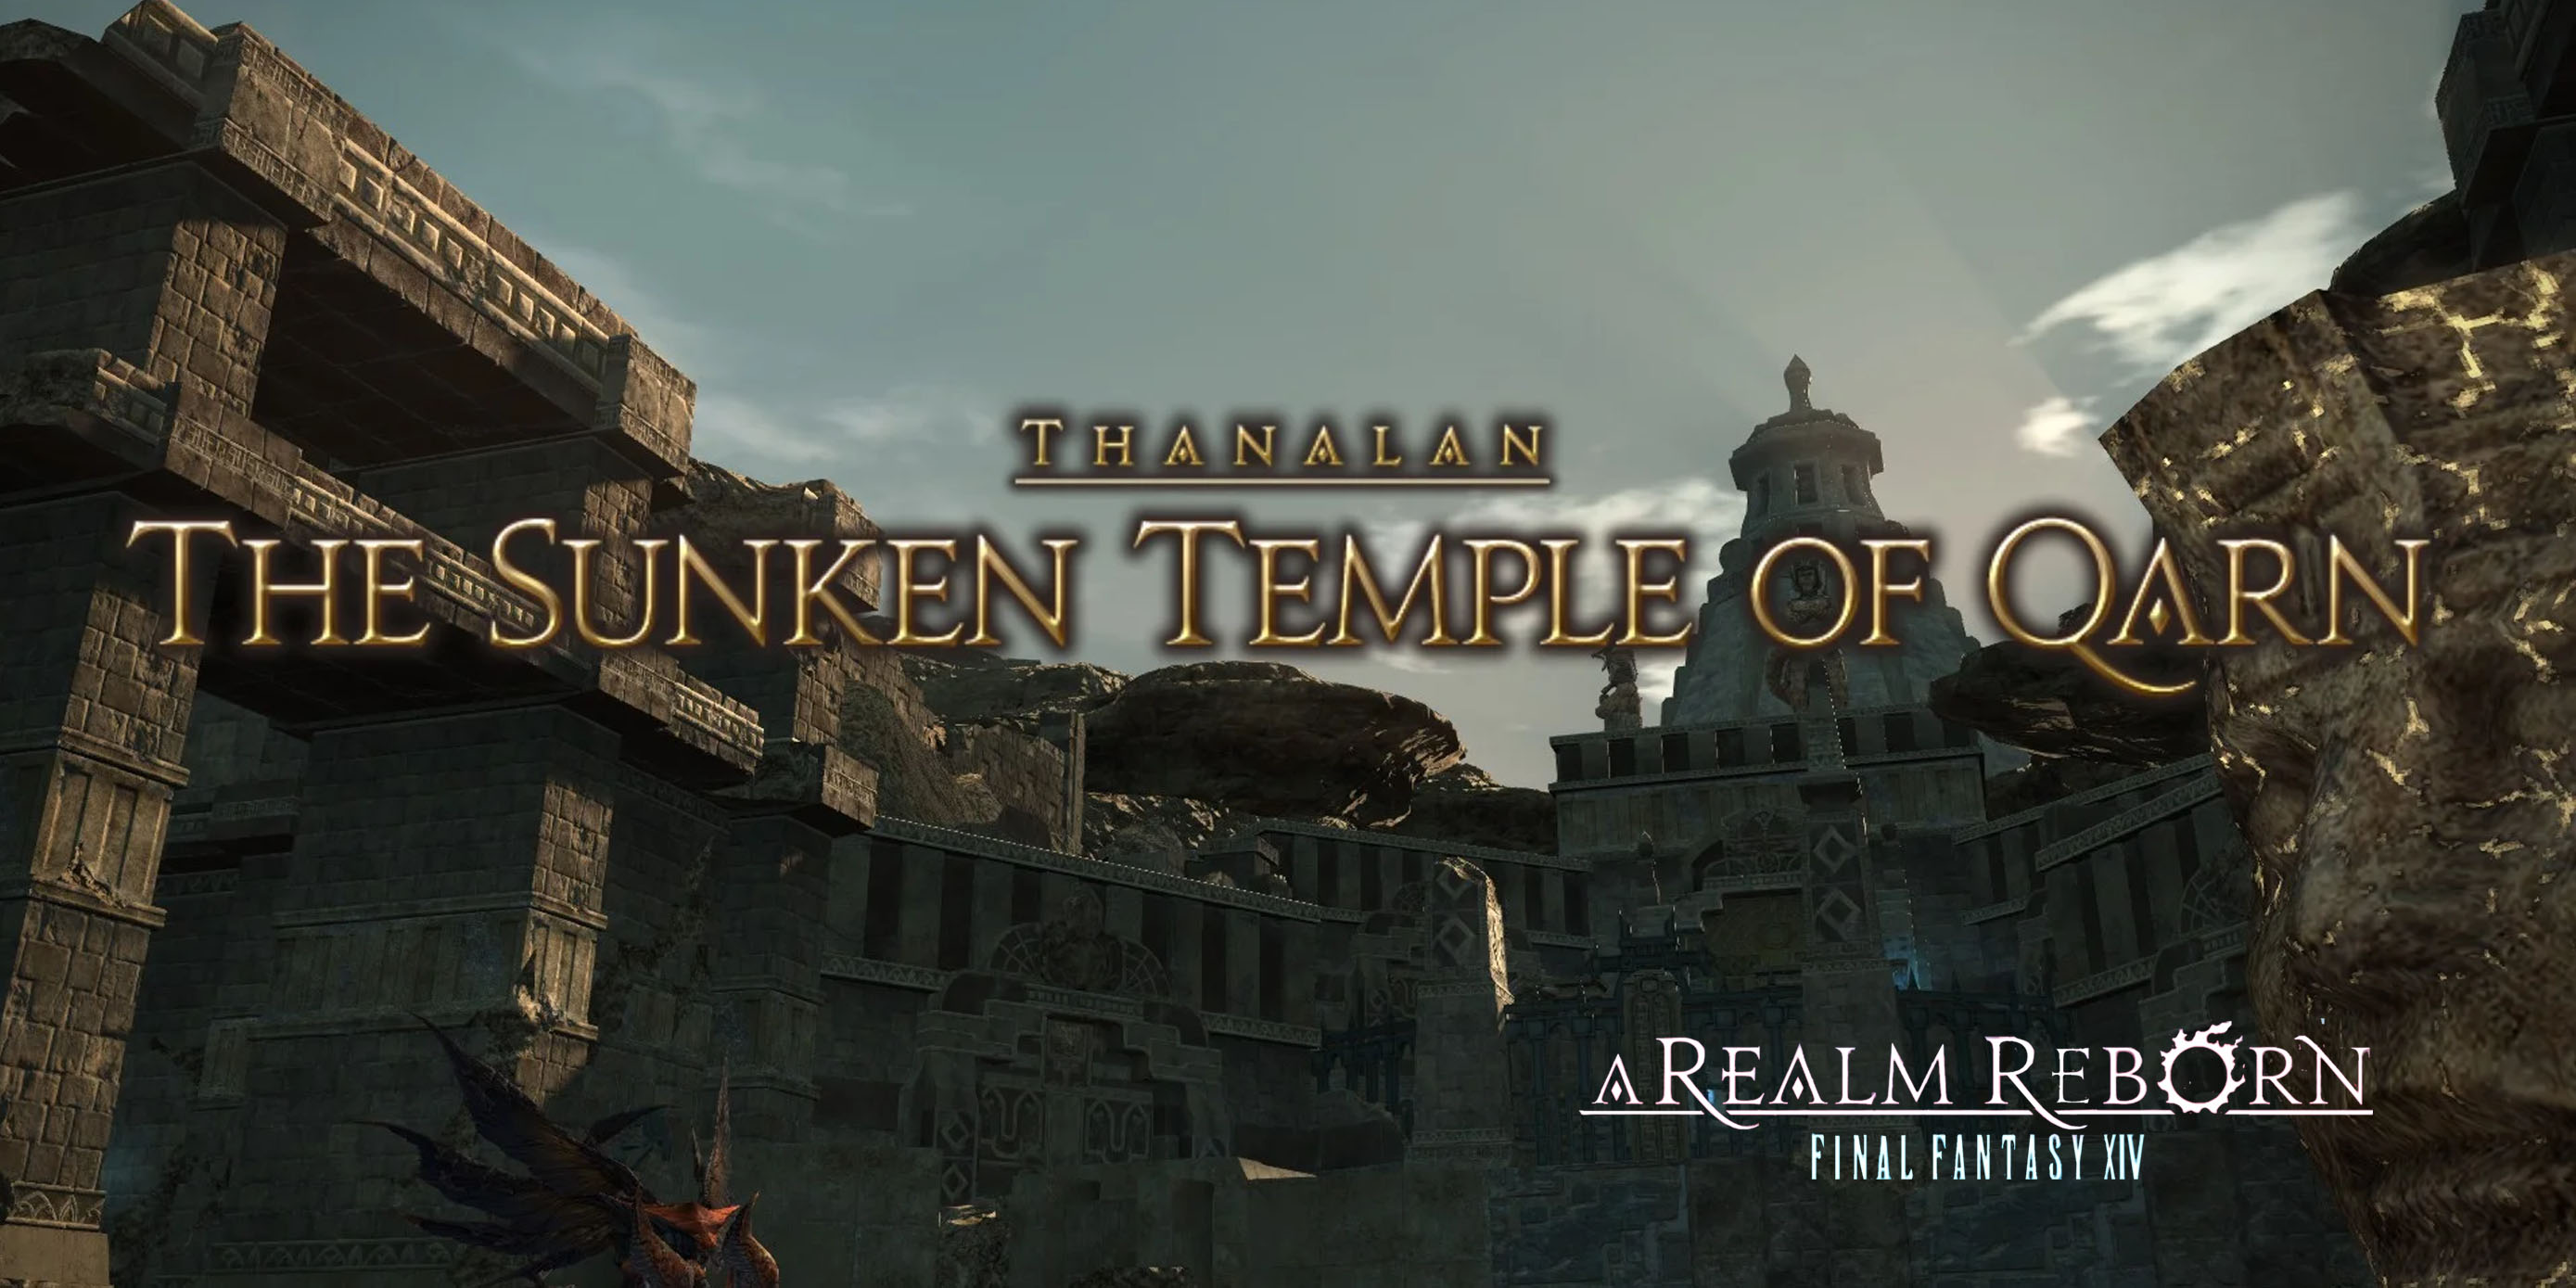 The sunken Temple of Qarn delivery point